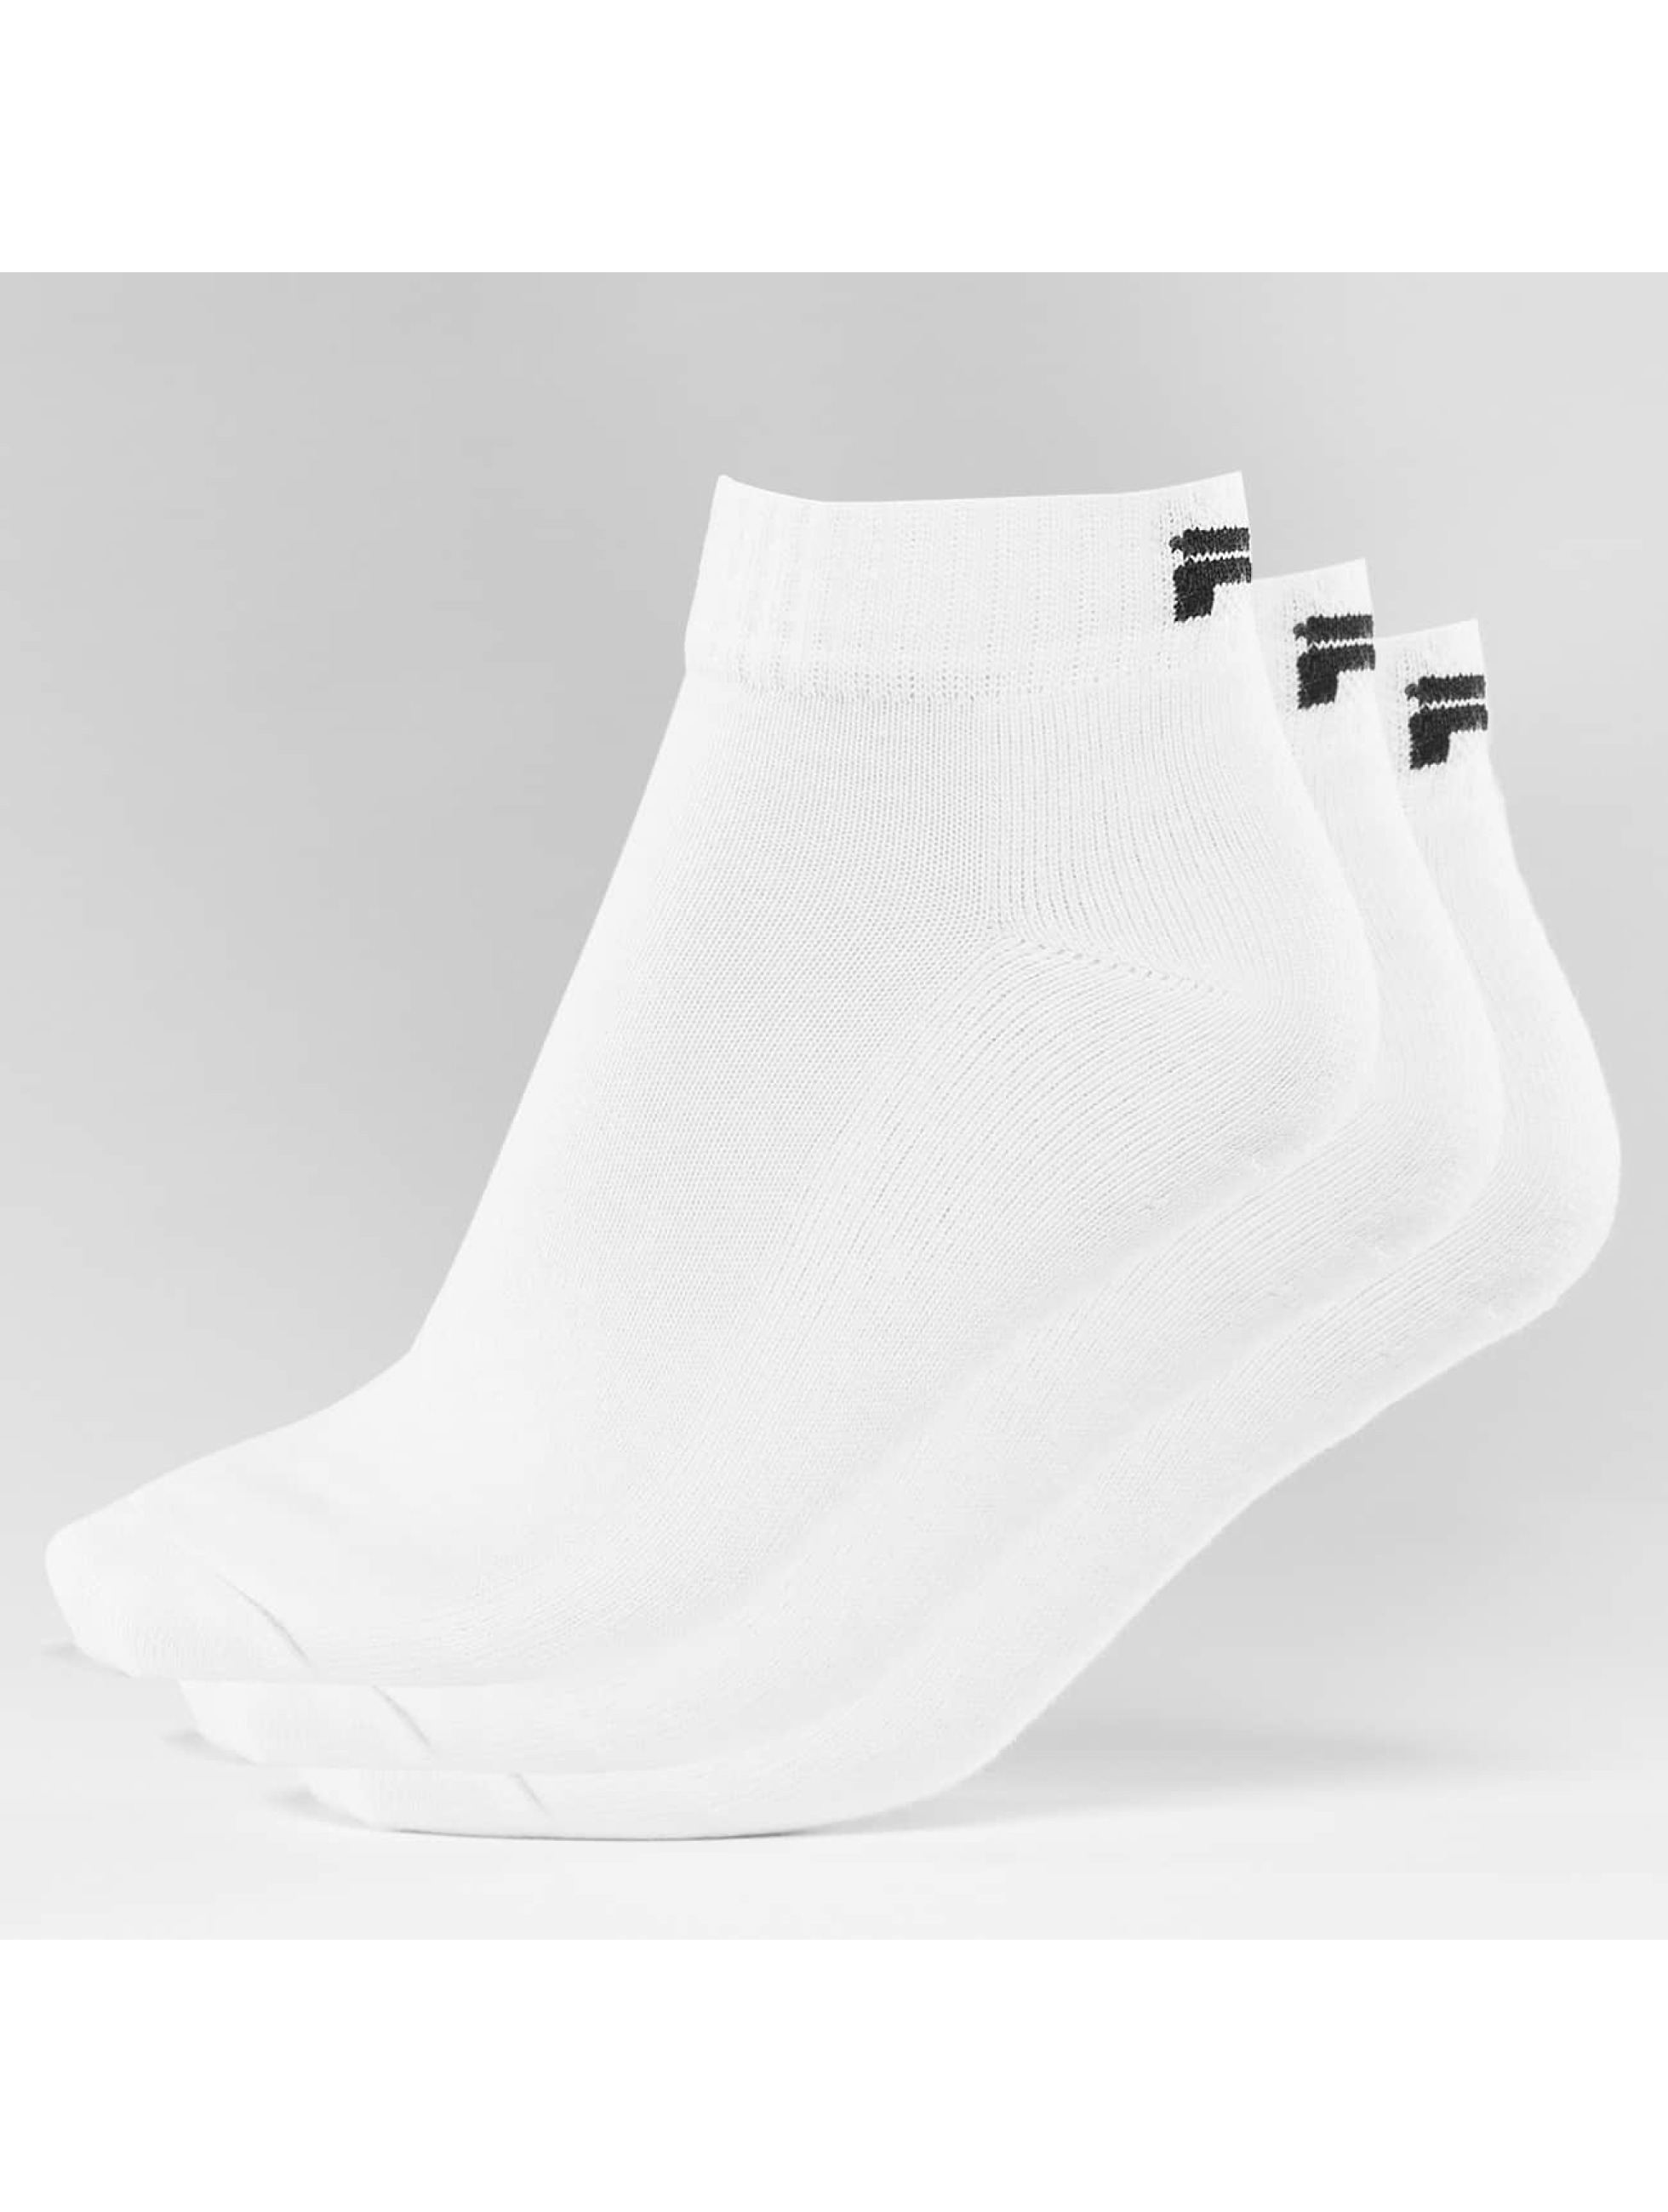 FILA Calcetines 3-Pack blanco